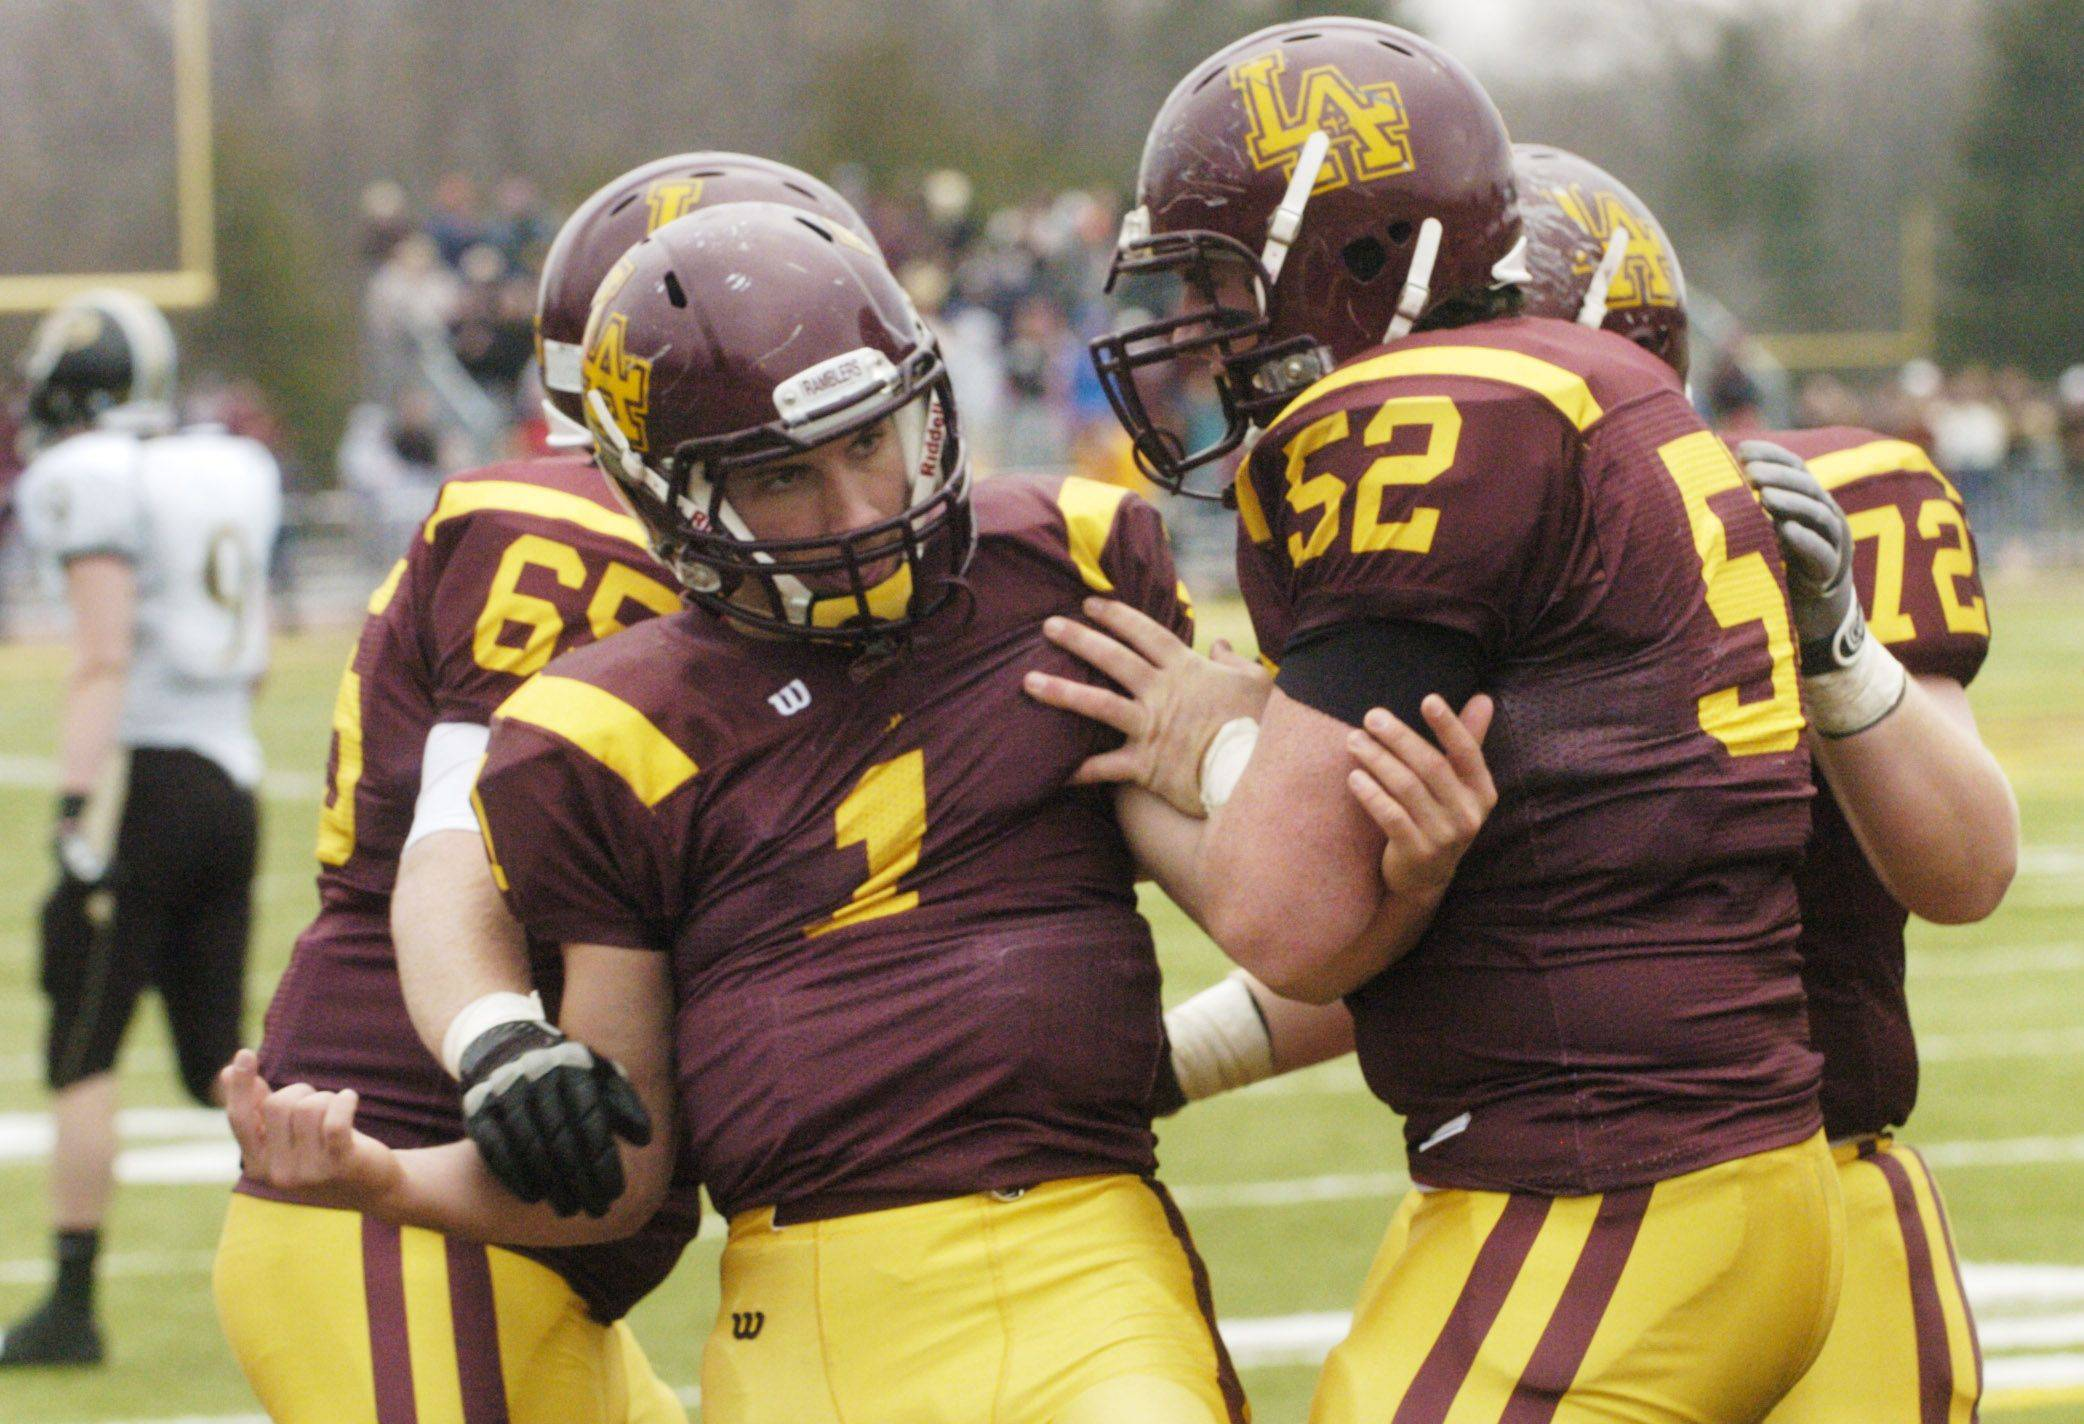 Loyola Academy's William Pavilos, left, celebrates his touchdown with teammate Robert Delaney during Saturday's win against Glenbard North.